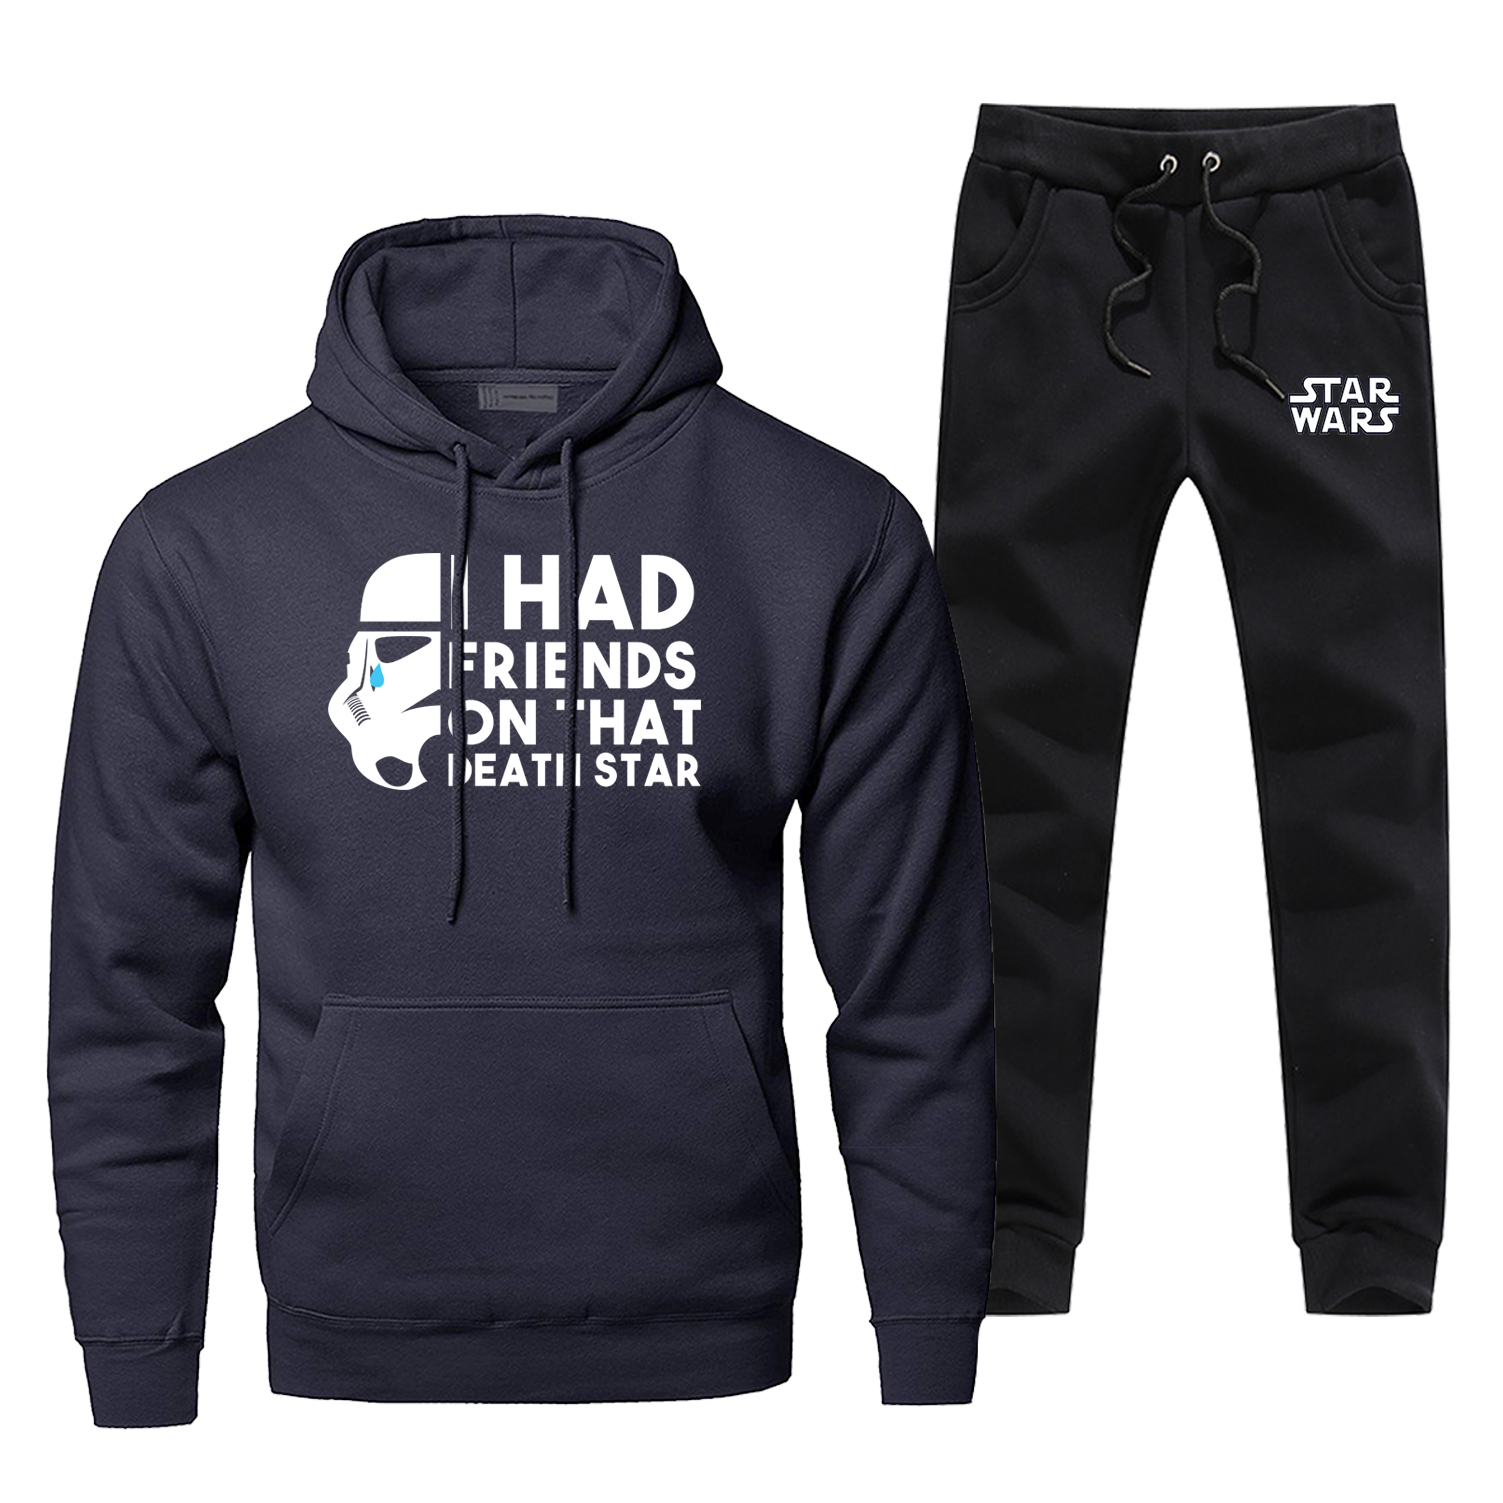 New Arrival Star Wars Funny Complete Man Tracksuit I Had Friends On That Death Star Brand 2 Piece Set Fashion Warm Men's Jogging